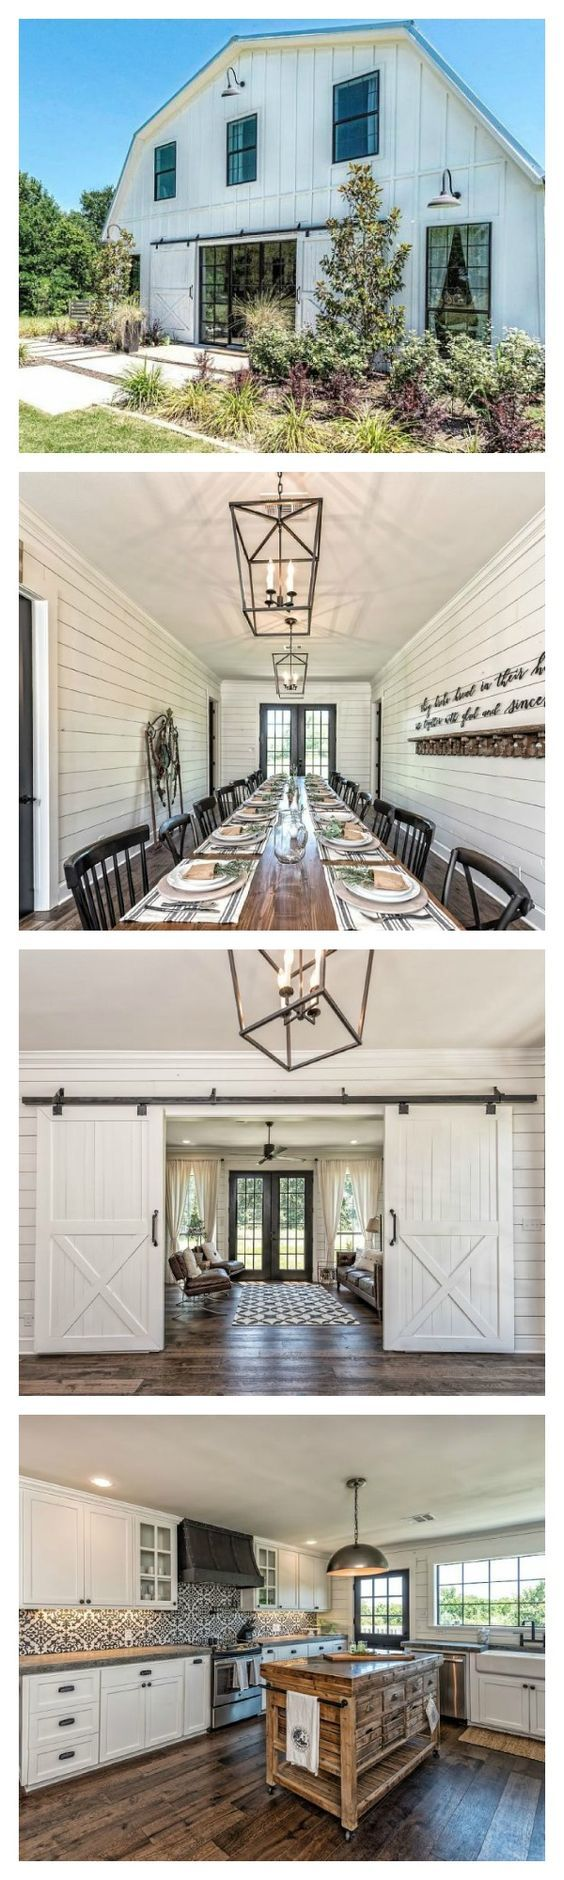 13 Awesome Barndominium Designs to Inspire You!